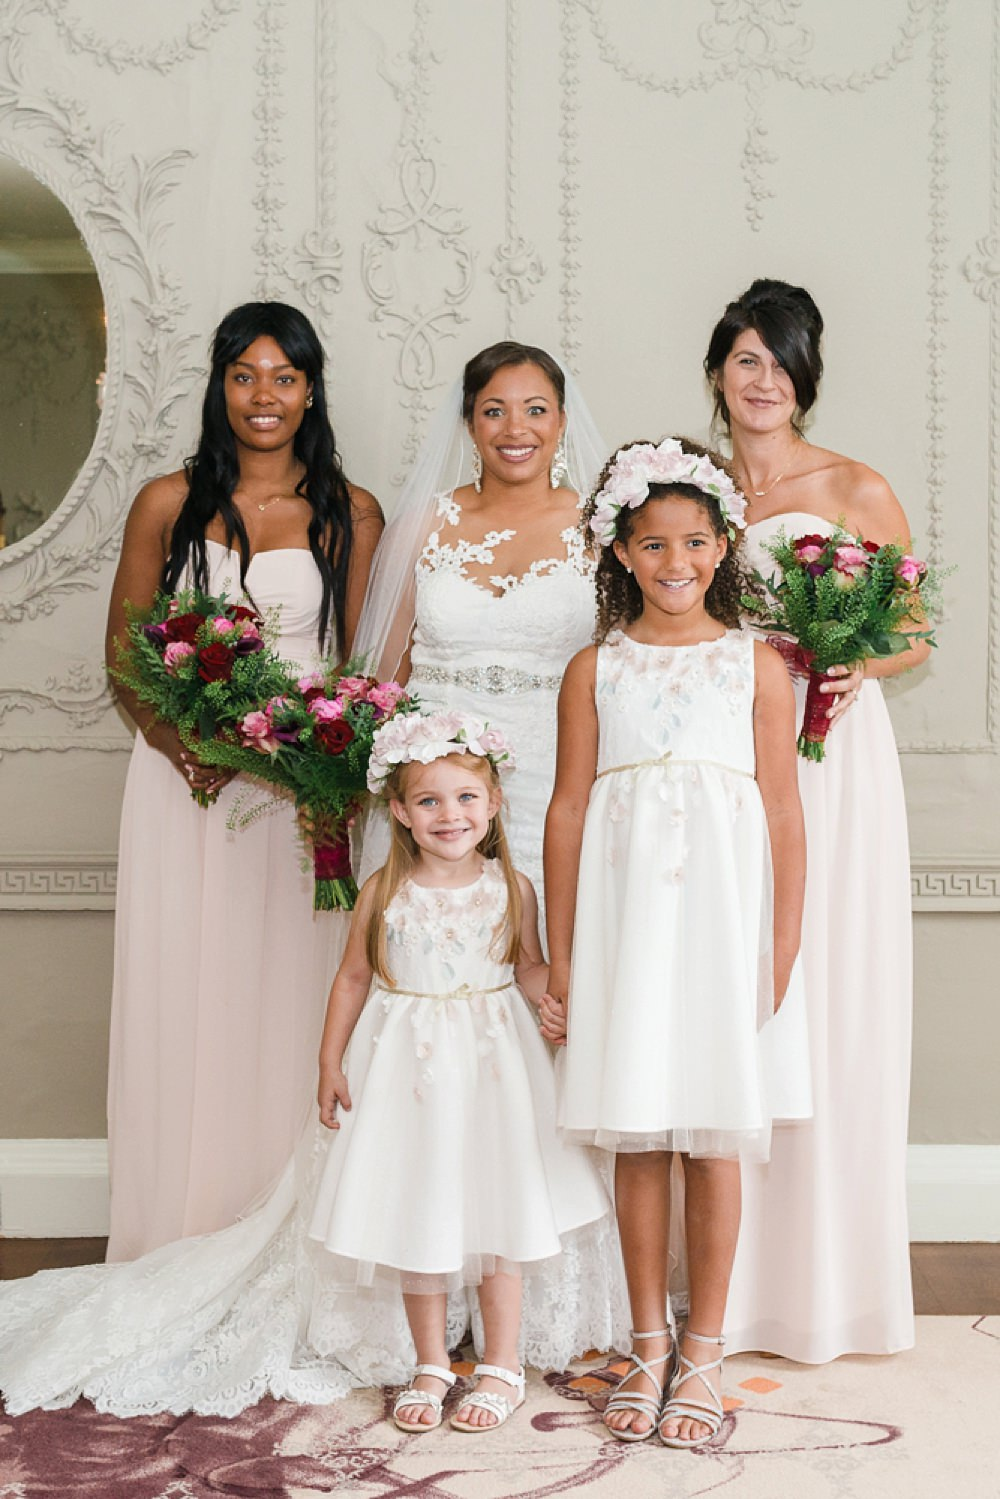 Bride Bridal La Sposa Fit & Flare Lace Dress Gown Floor Length Veil Pink Red Bouquet Pink Strapless Bridesmaids Flower Girls Stoke Place Wedding Hannah McClune Photography